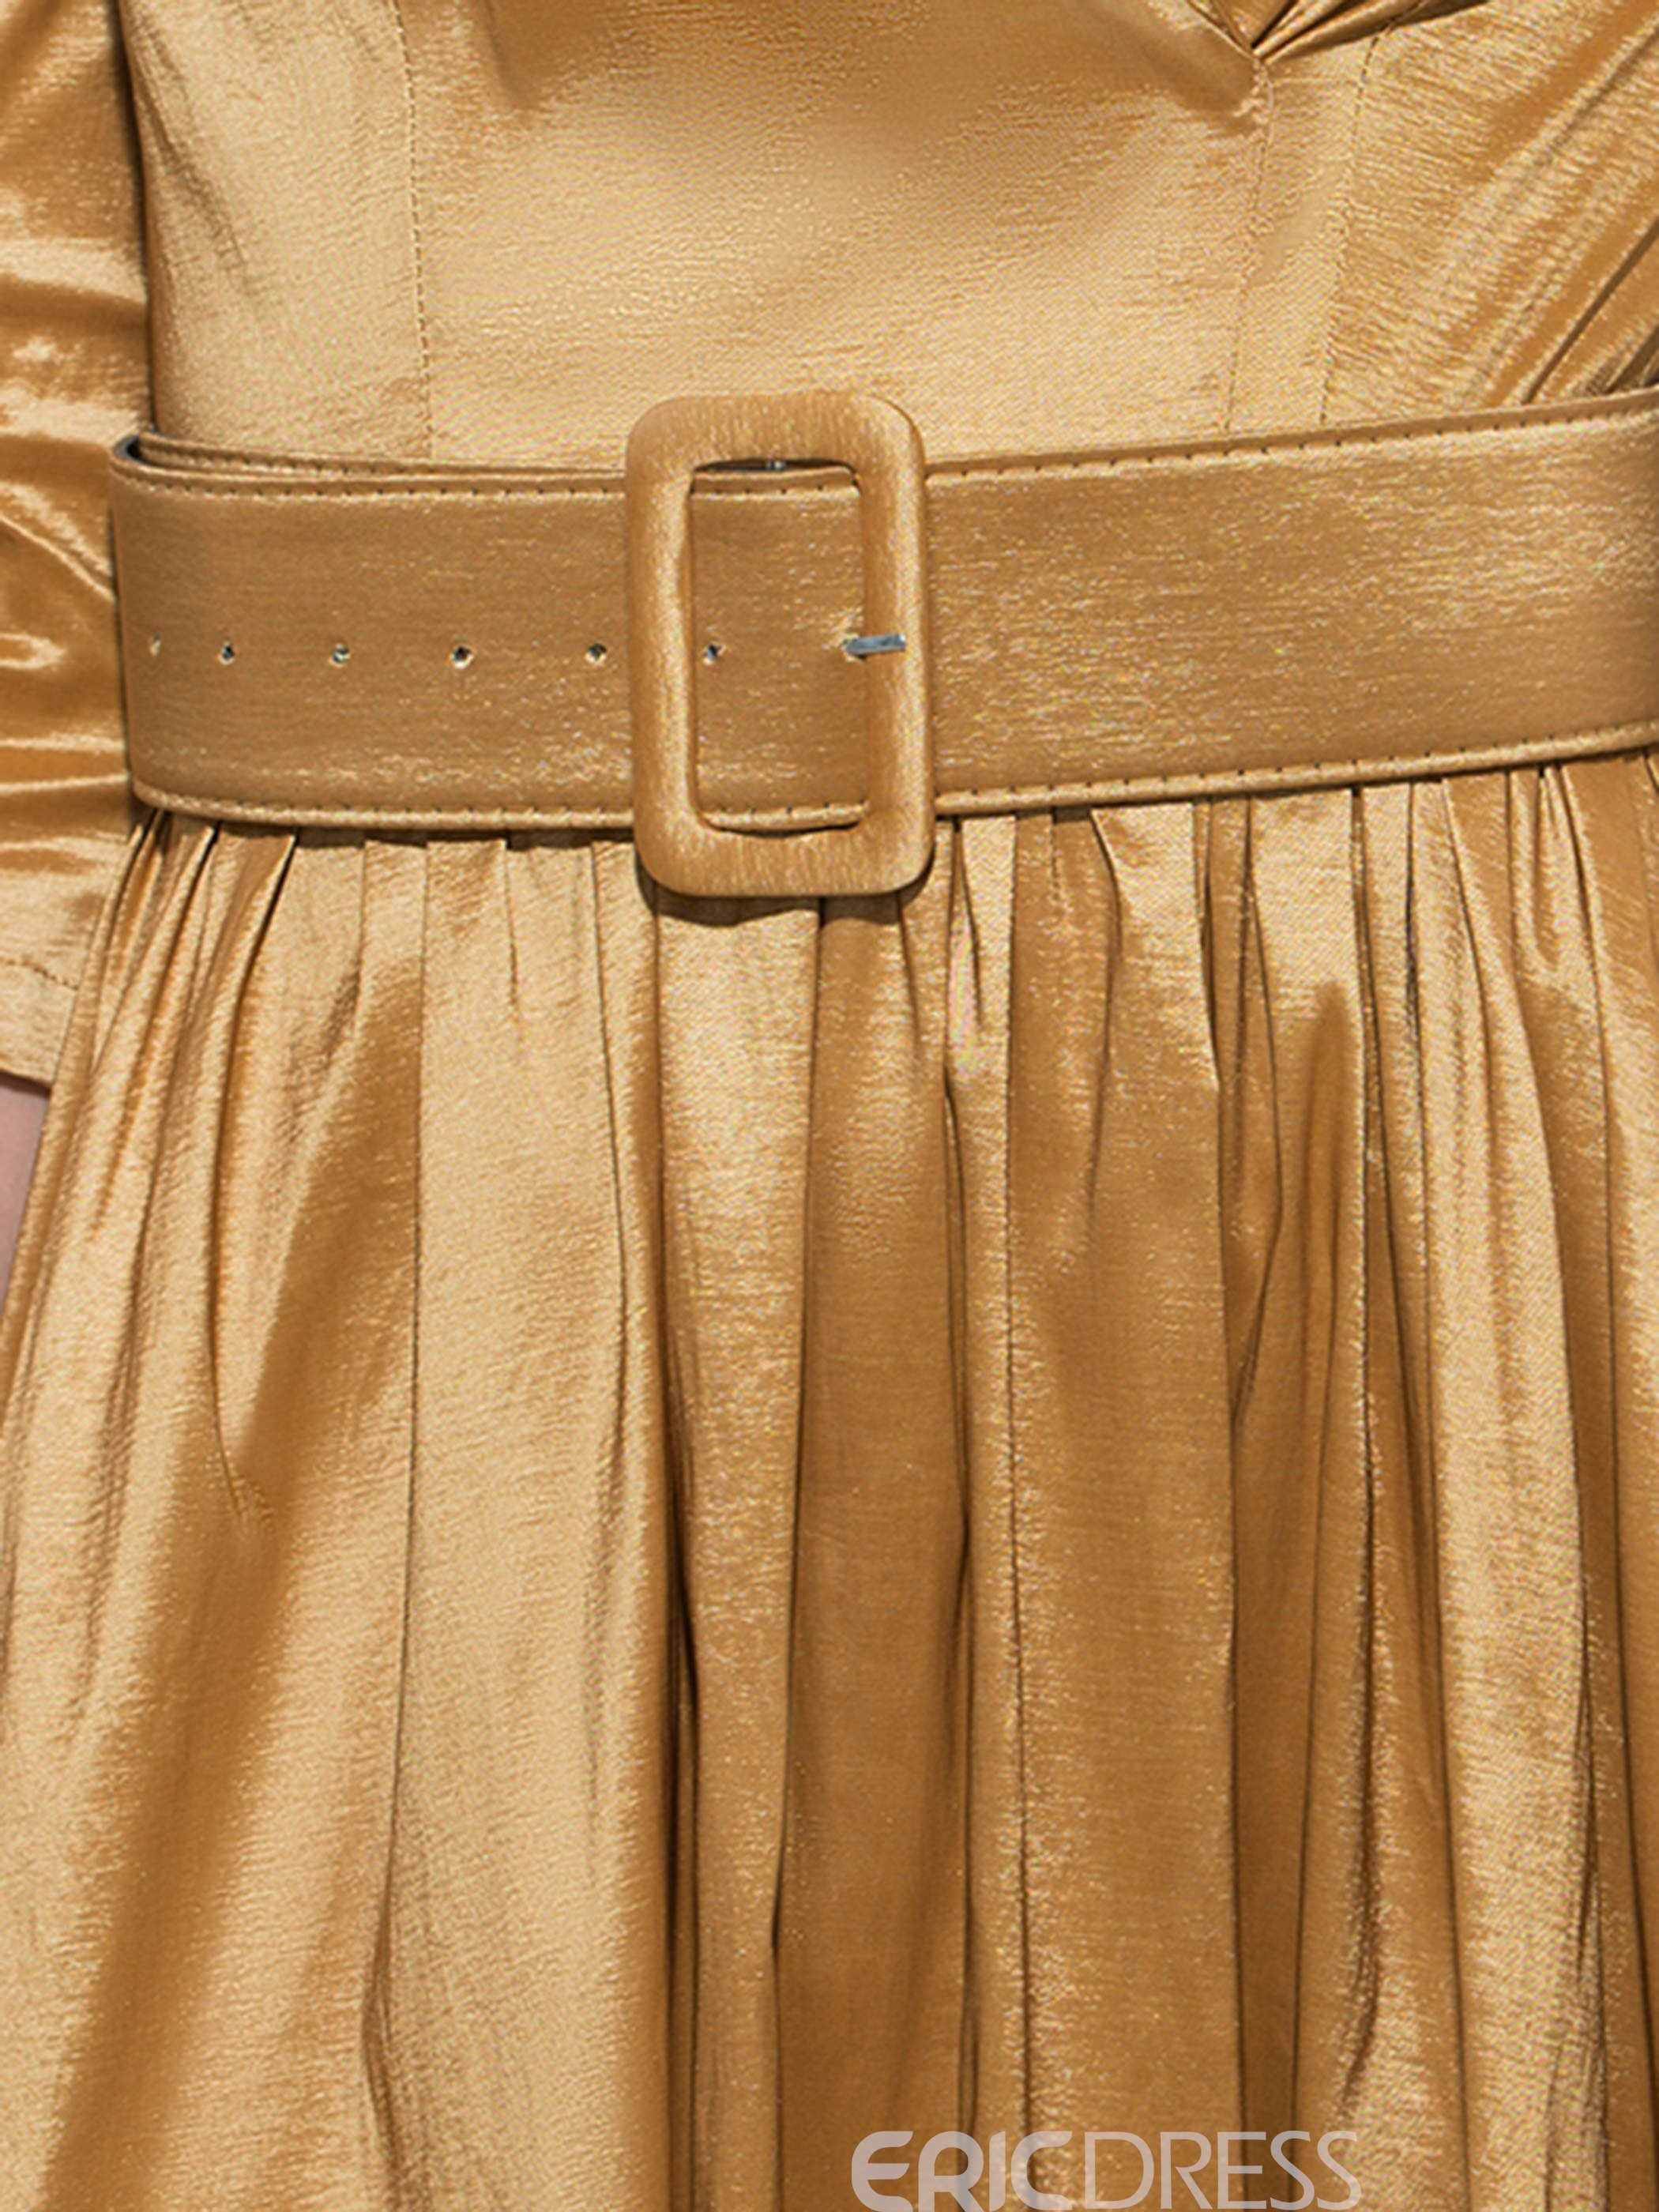 Ericdress Notched Lapel Belt Pleated Patchwork Platinum Plated Casual Dress